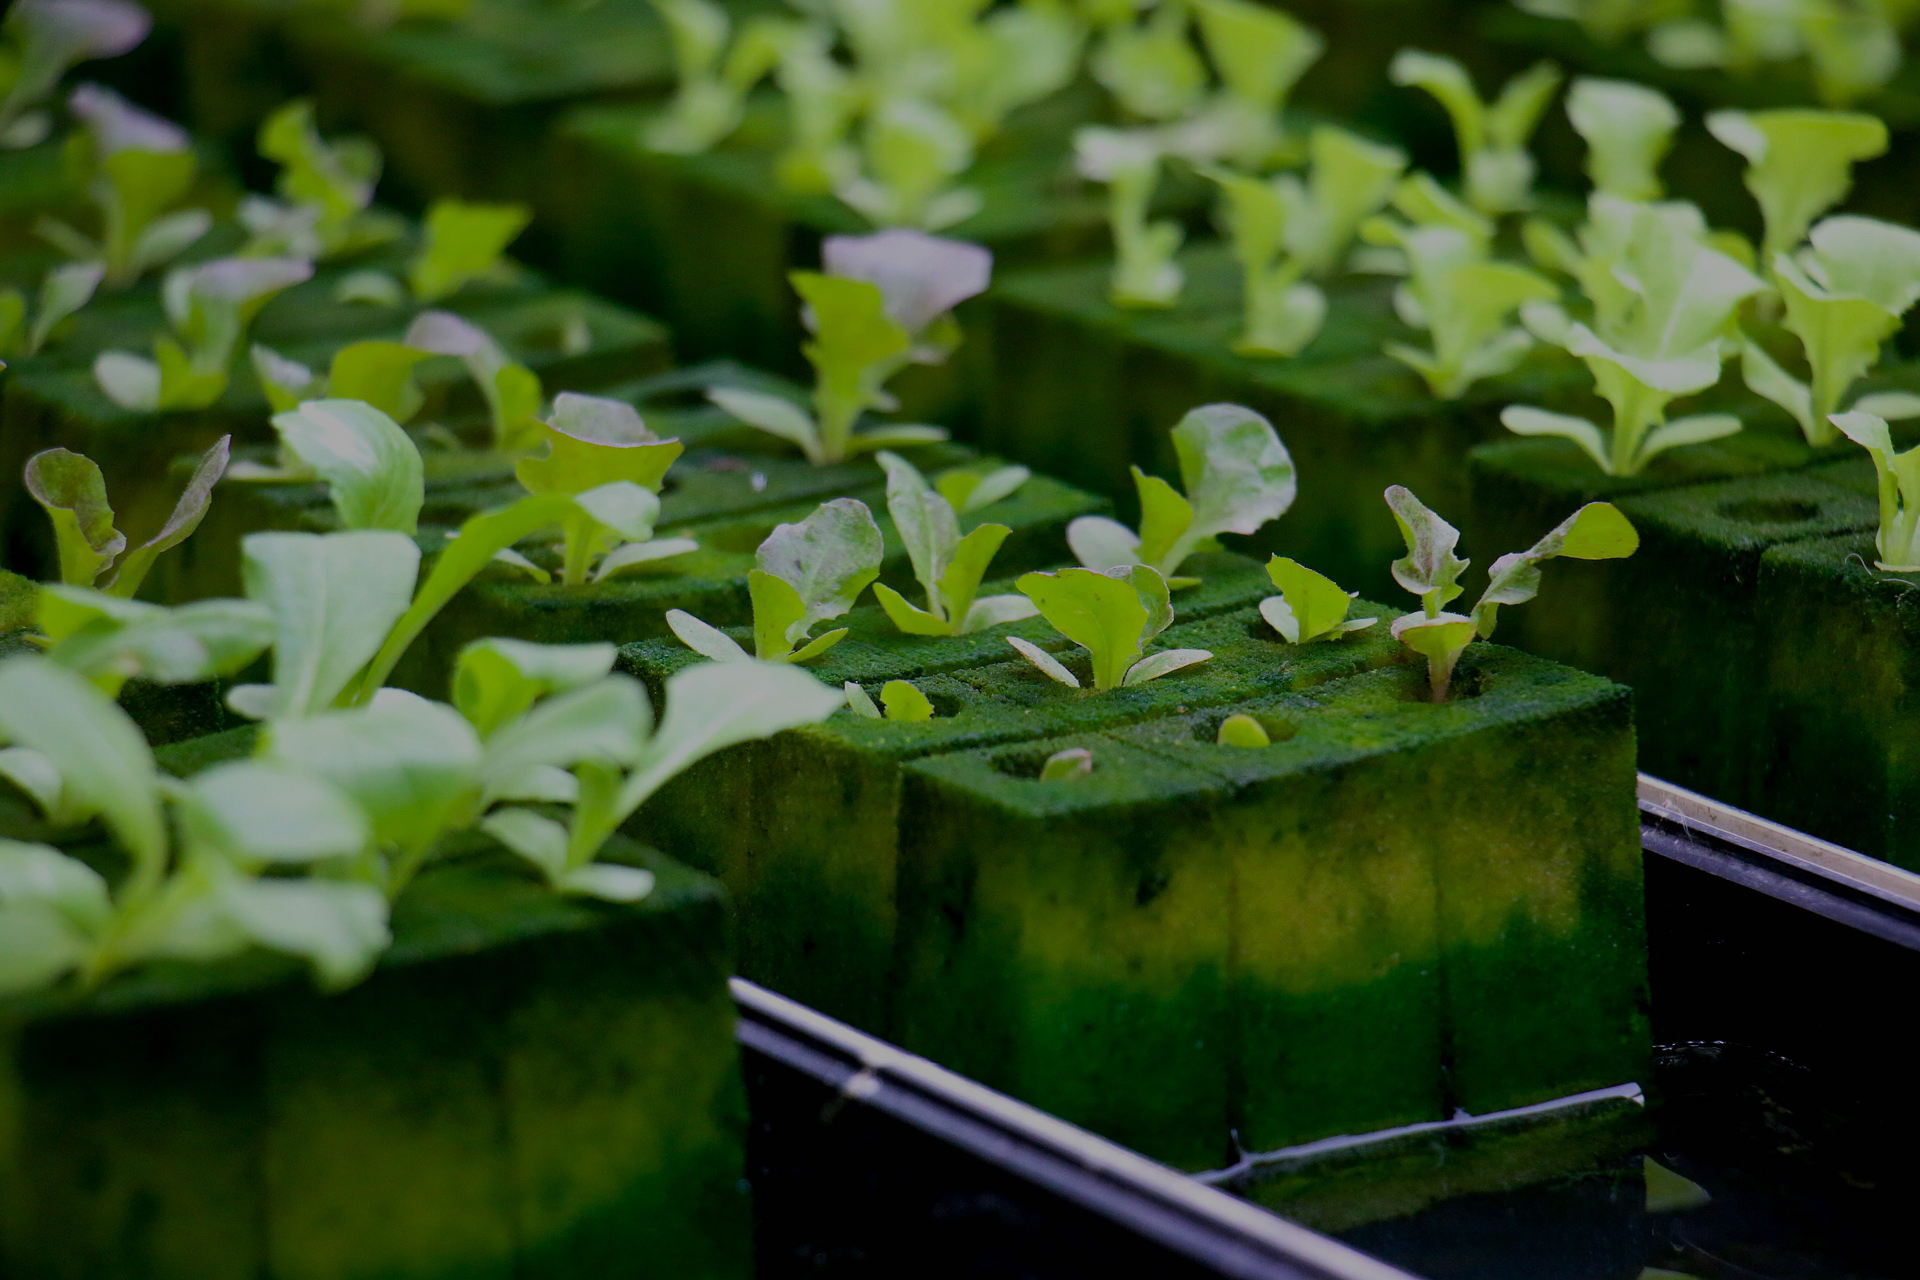 Plants growing in a hydroponic setup; highlighting the environmental impact of starter plugs and rockwool